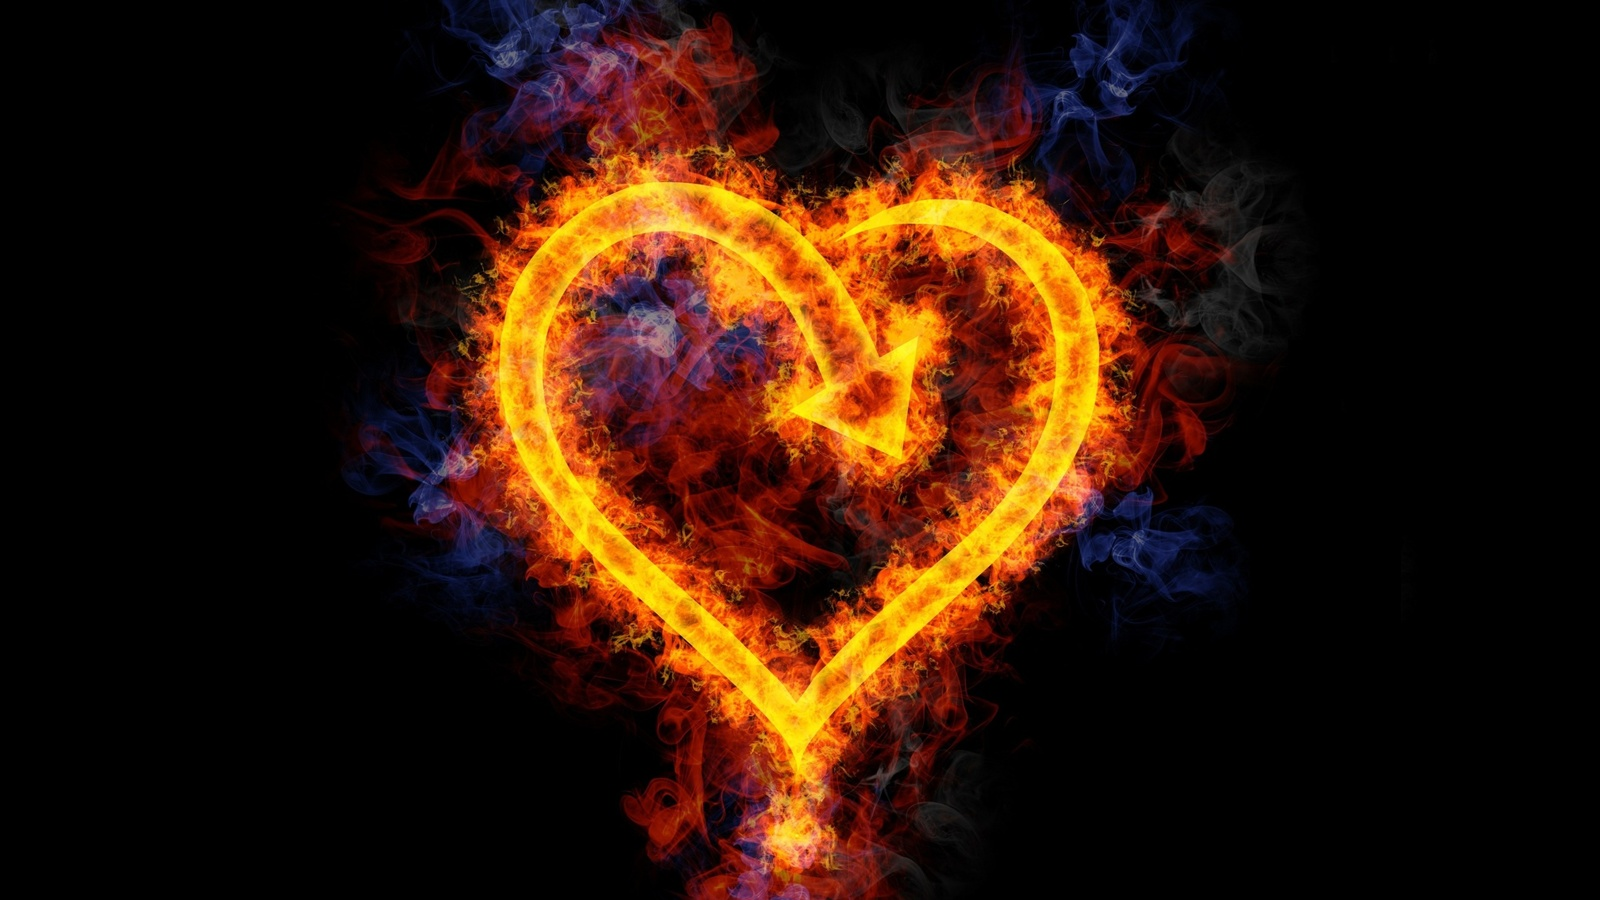 Wallpaper Coffee 3d Wallpaper Flame Love Heart Shaped 2560x1600 Hd Picture Image